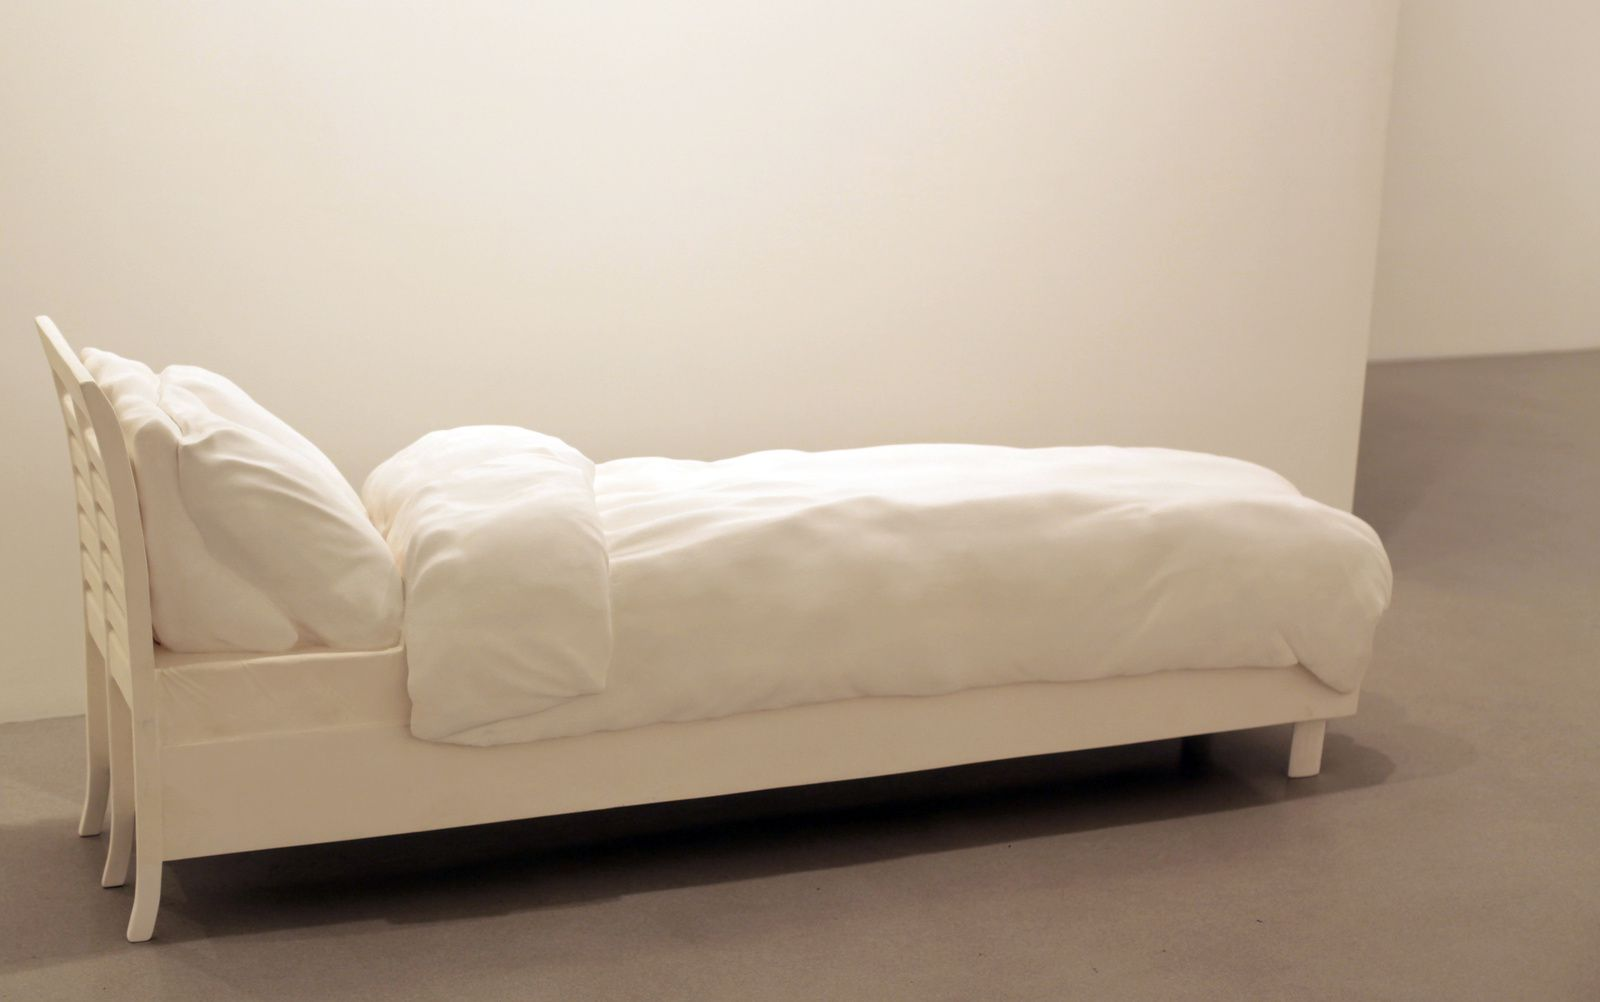 """Attic - Brain - Rain (Bed)"", 2014 de Erwin Wurm - Courtesy Galerie Thaddaeus Ropac © Photo Éric Simon"